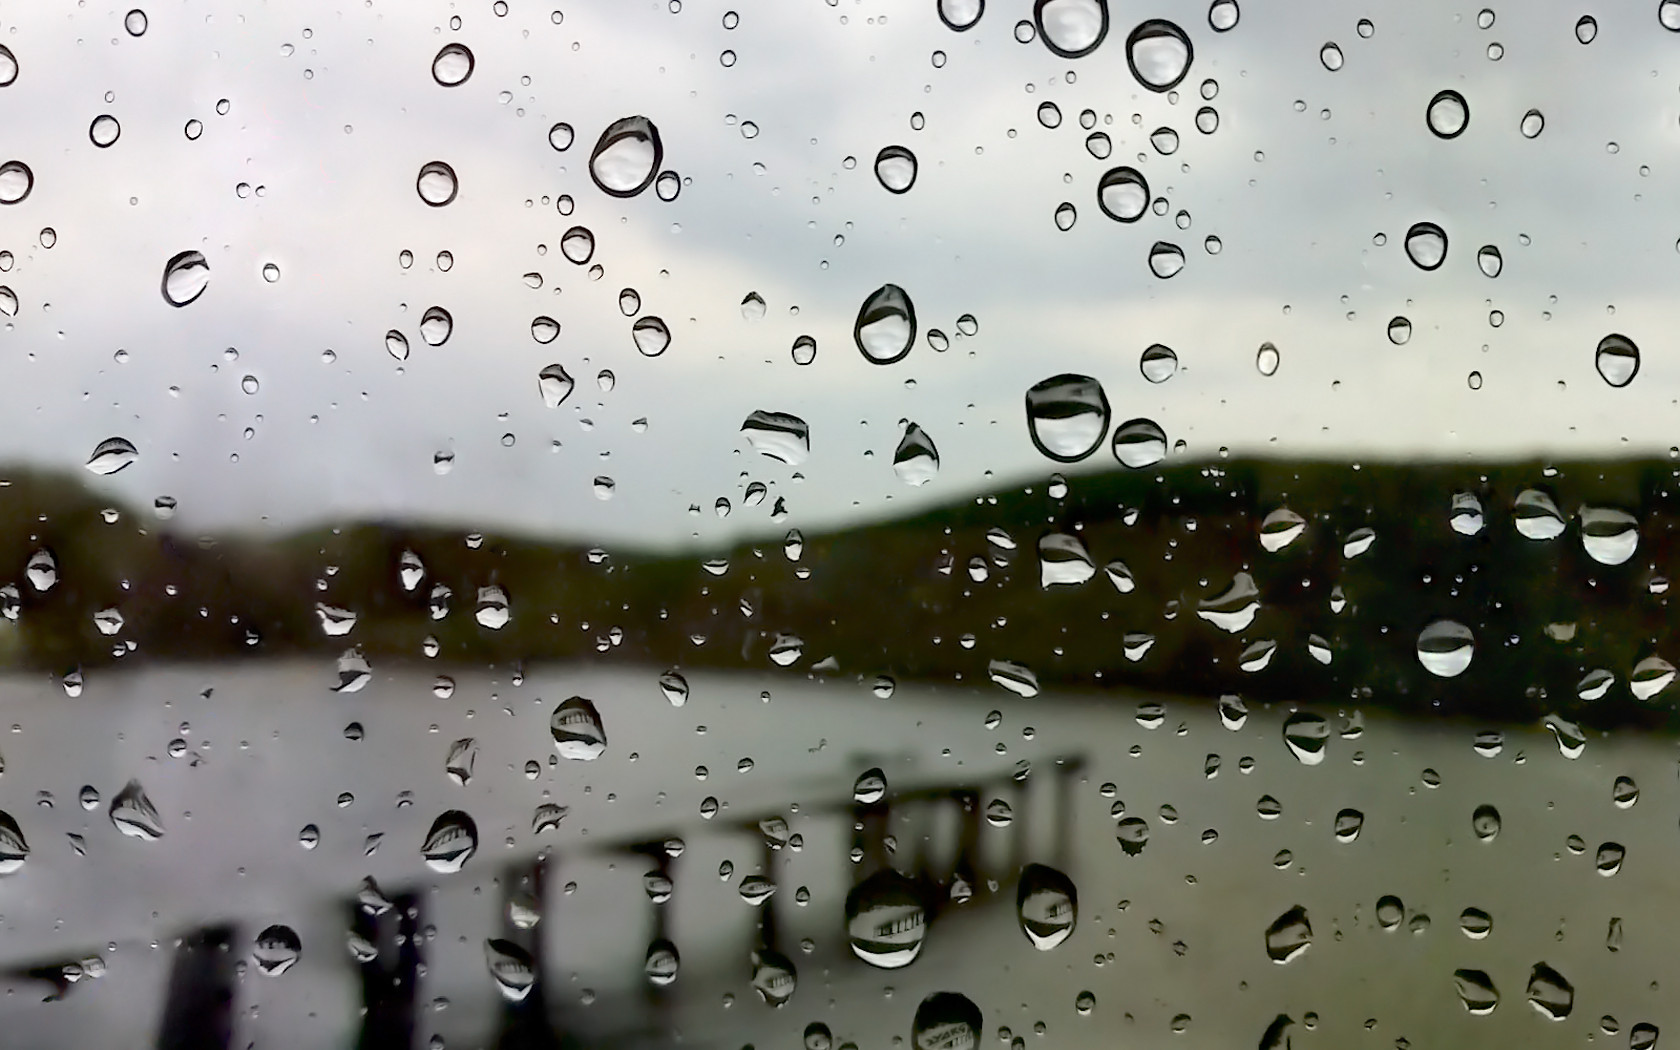 raindrops by zy0rg on deviantart